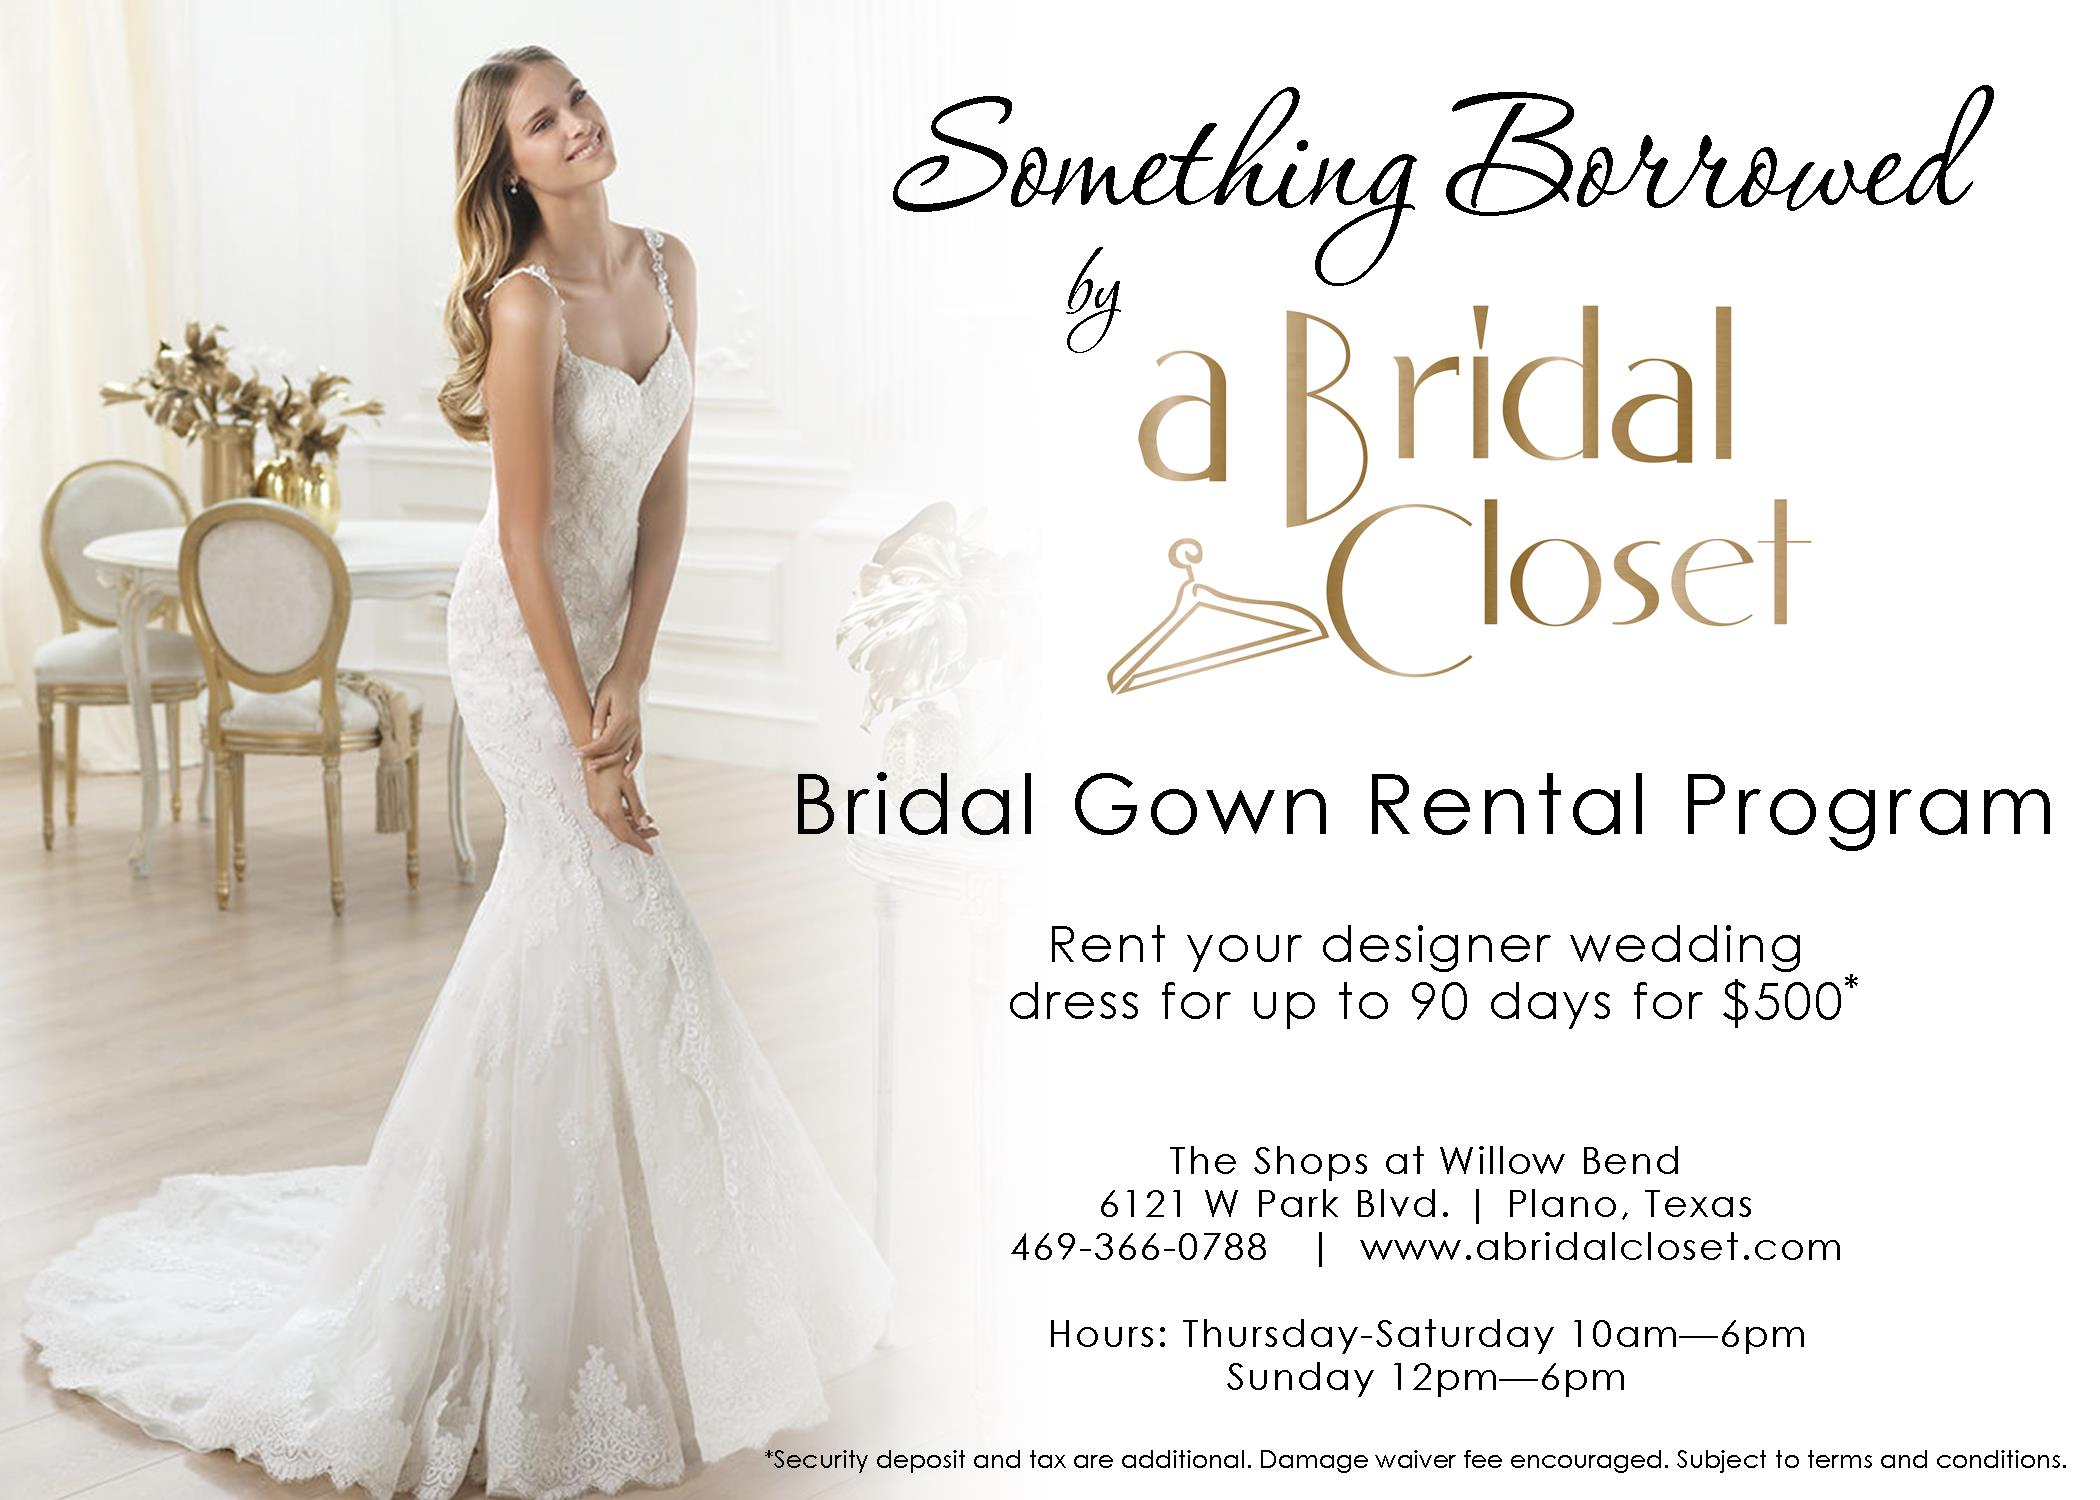 bridal closet rental wedding dresses CLICK HERE TO LEARN MORE ABOUT OUR BRIDAL GOWN RENTAL PROGRAM